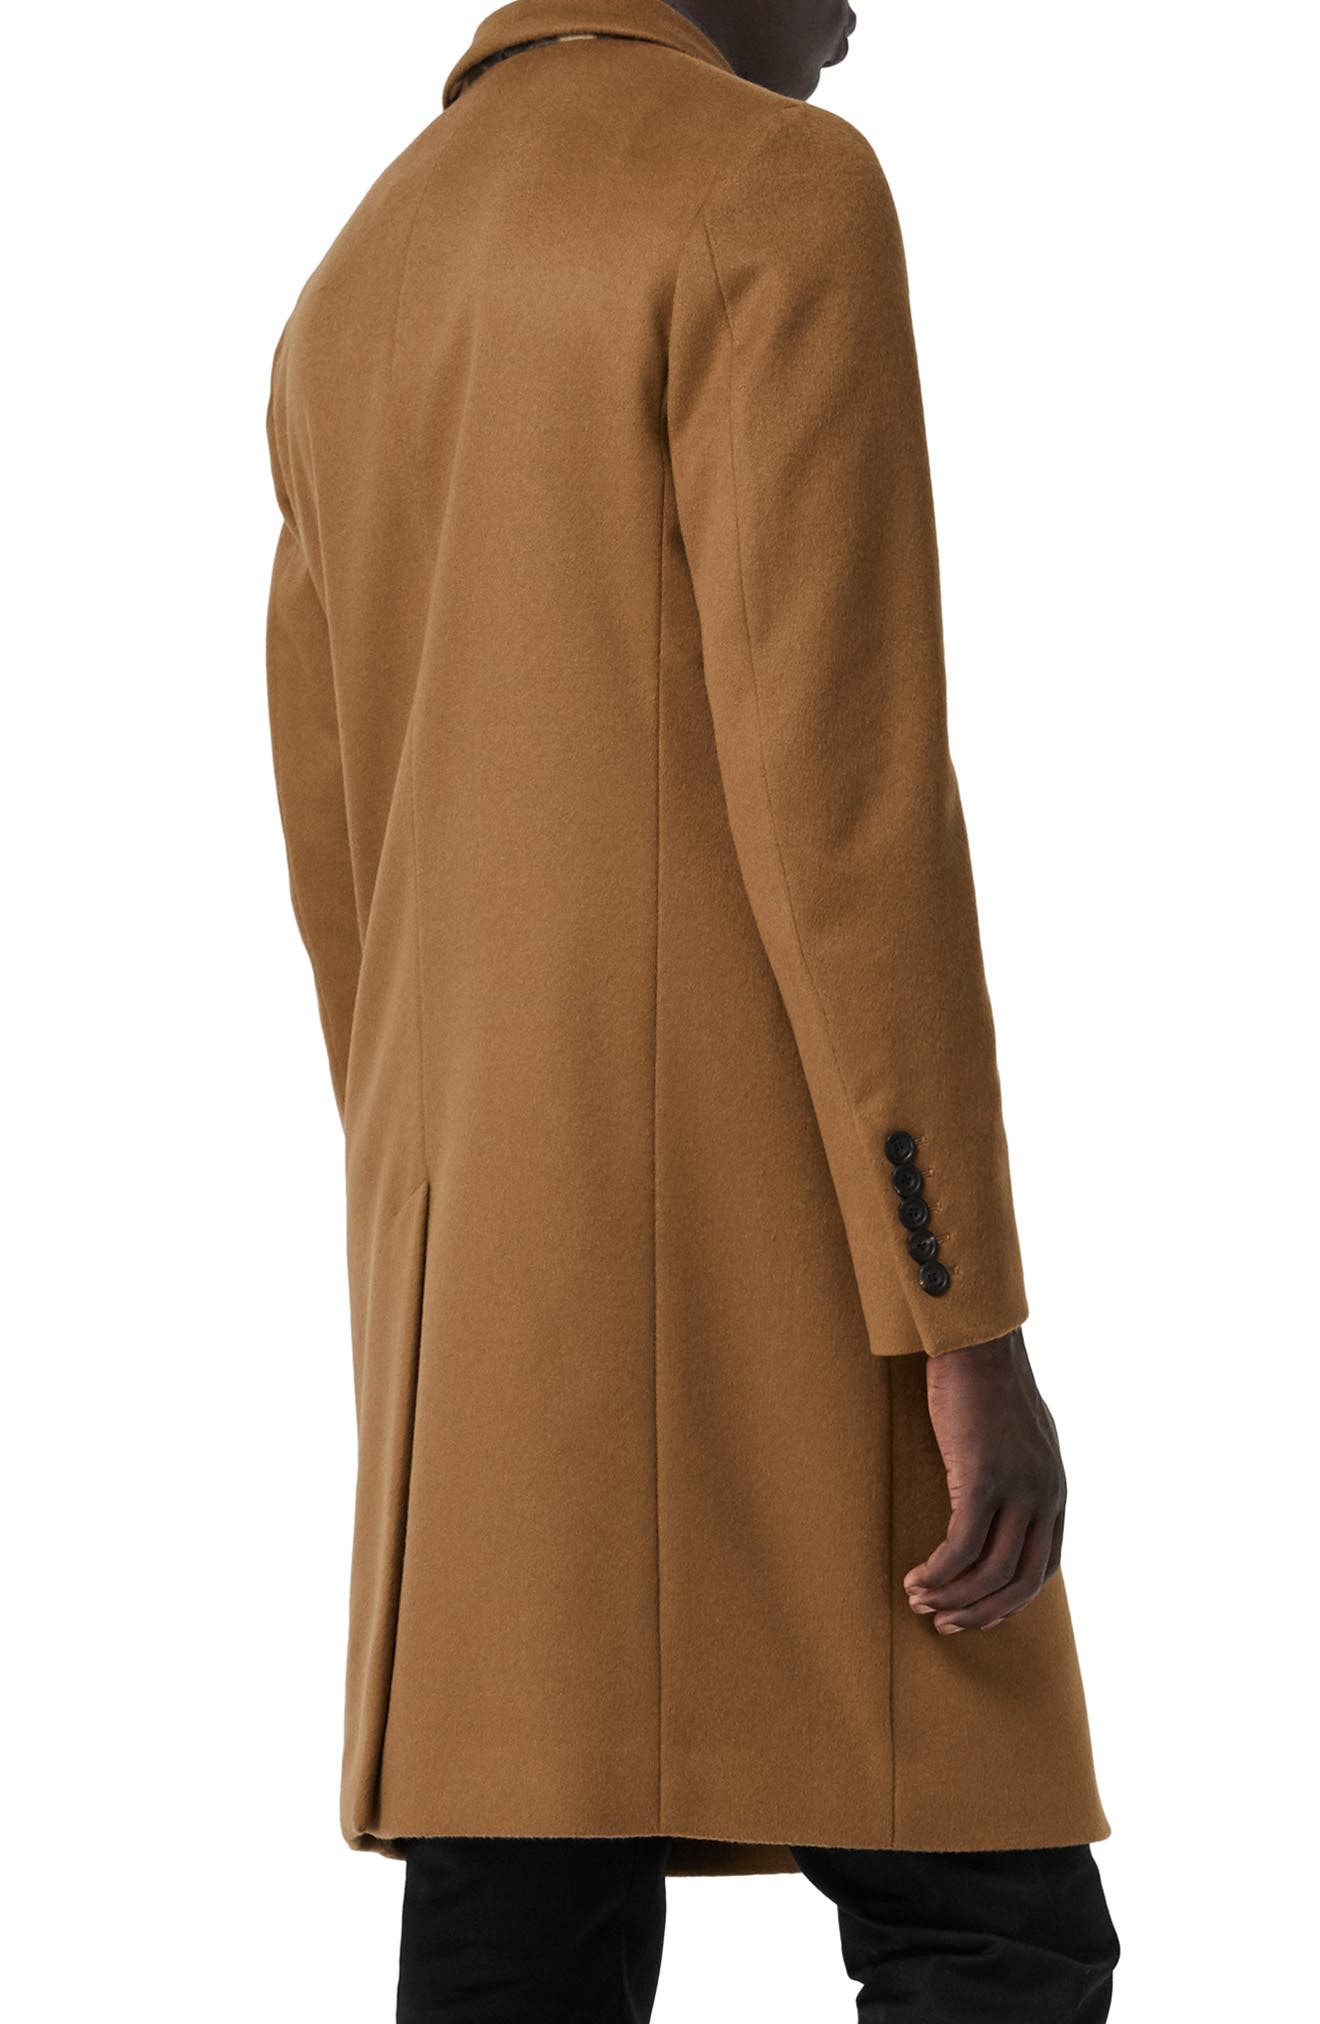 Halesowen Wool and Cashmere Overcoat,                             Alternate thumbnail 3, color,                             DARK CAMEL